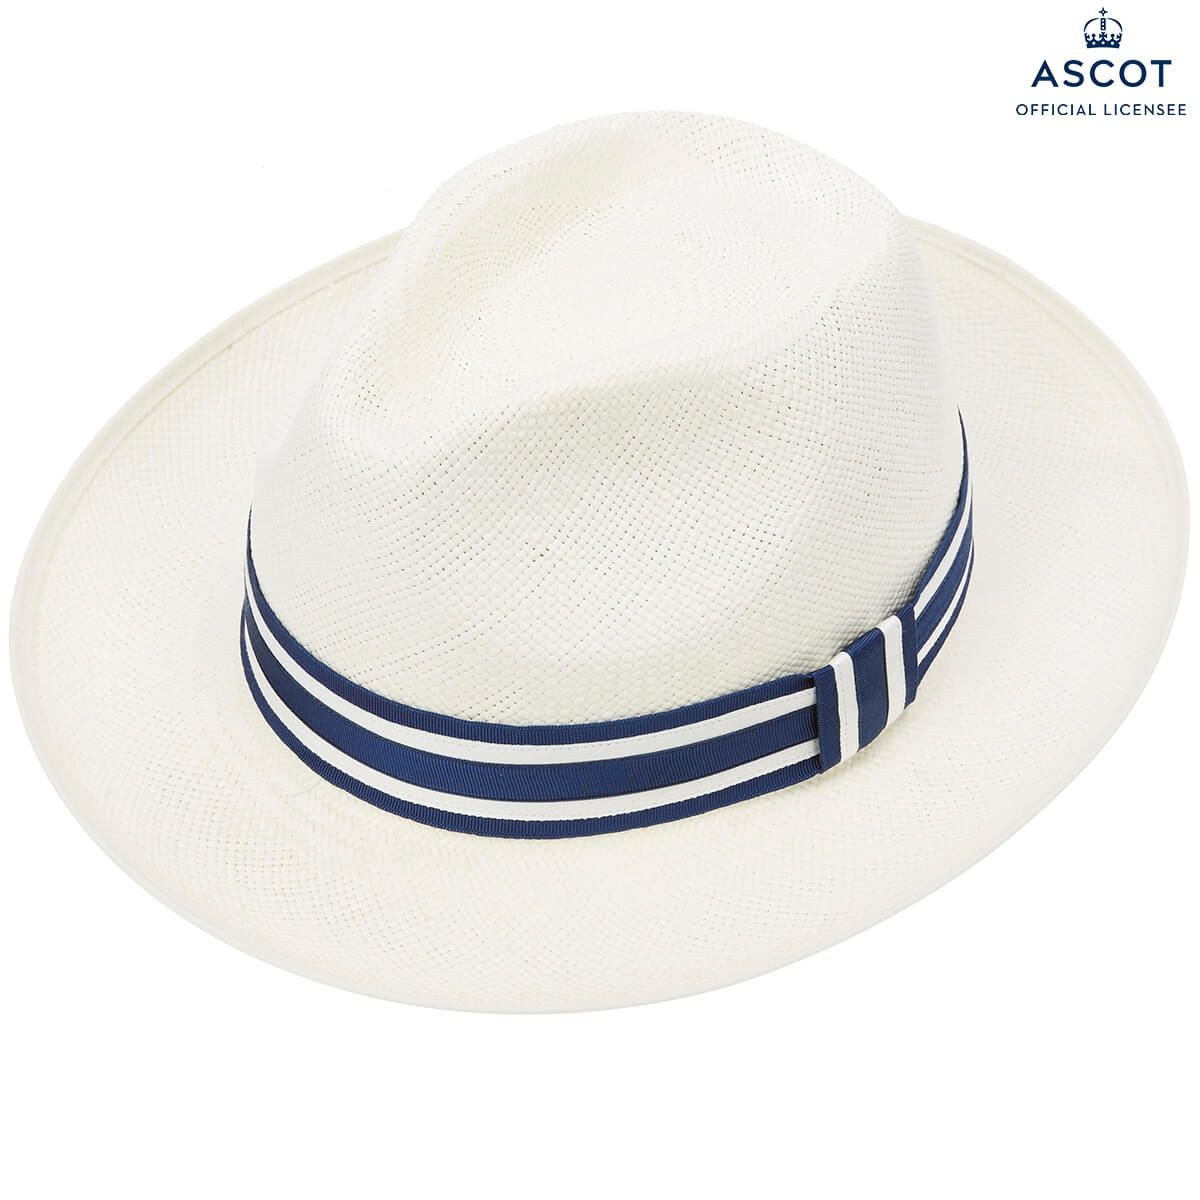 Ethan Preset Panama Hat With Navy & White Striped Band - White Bleached in size 55